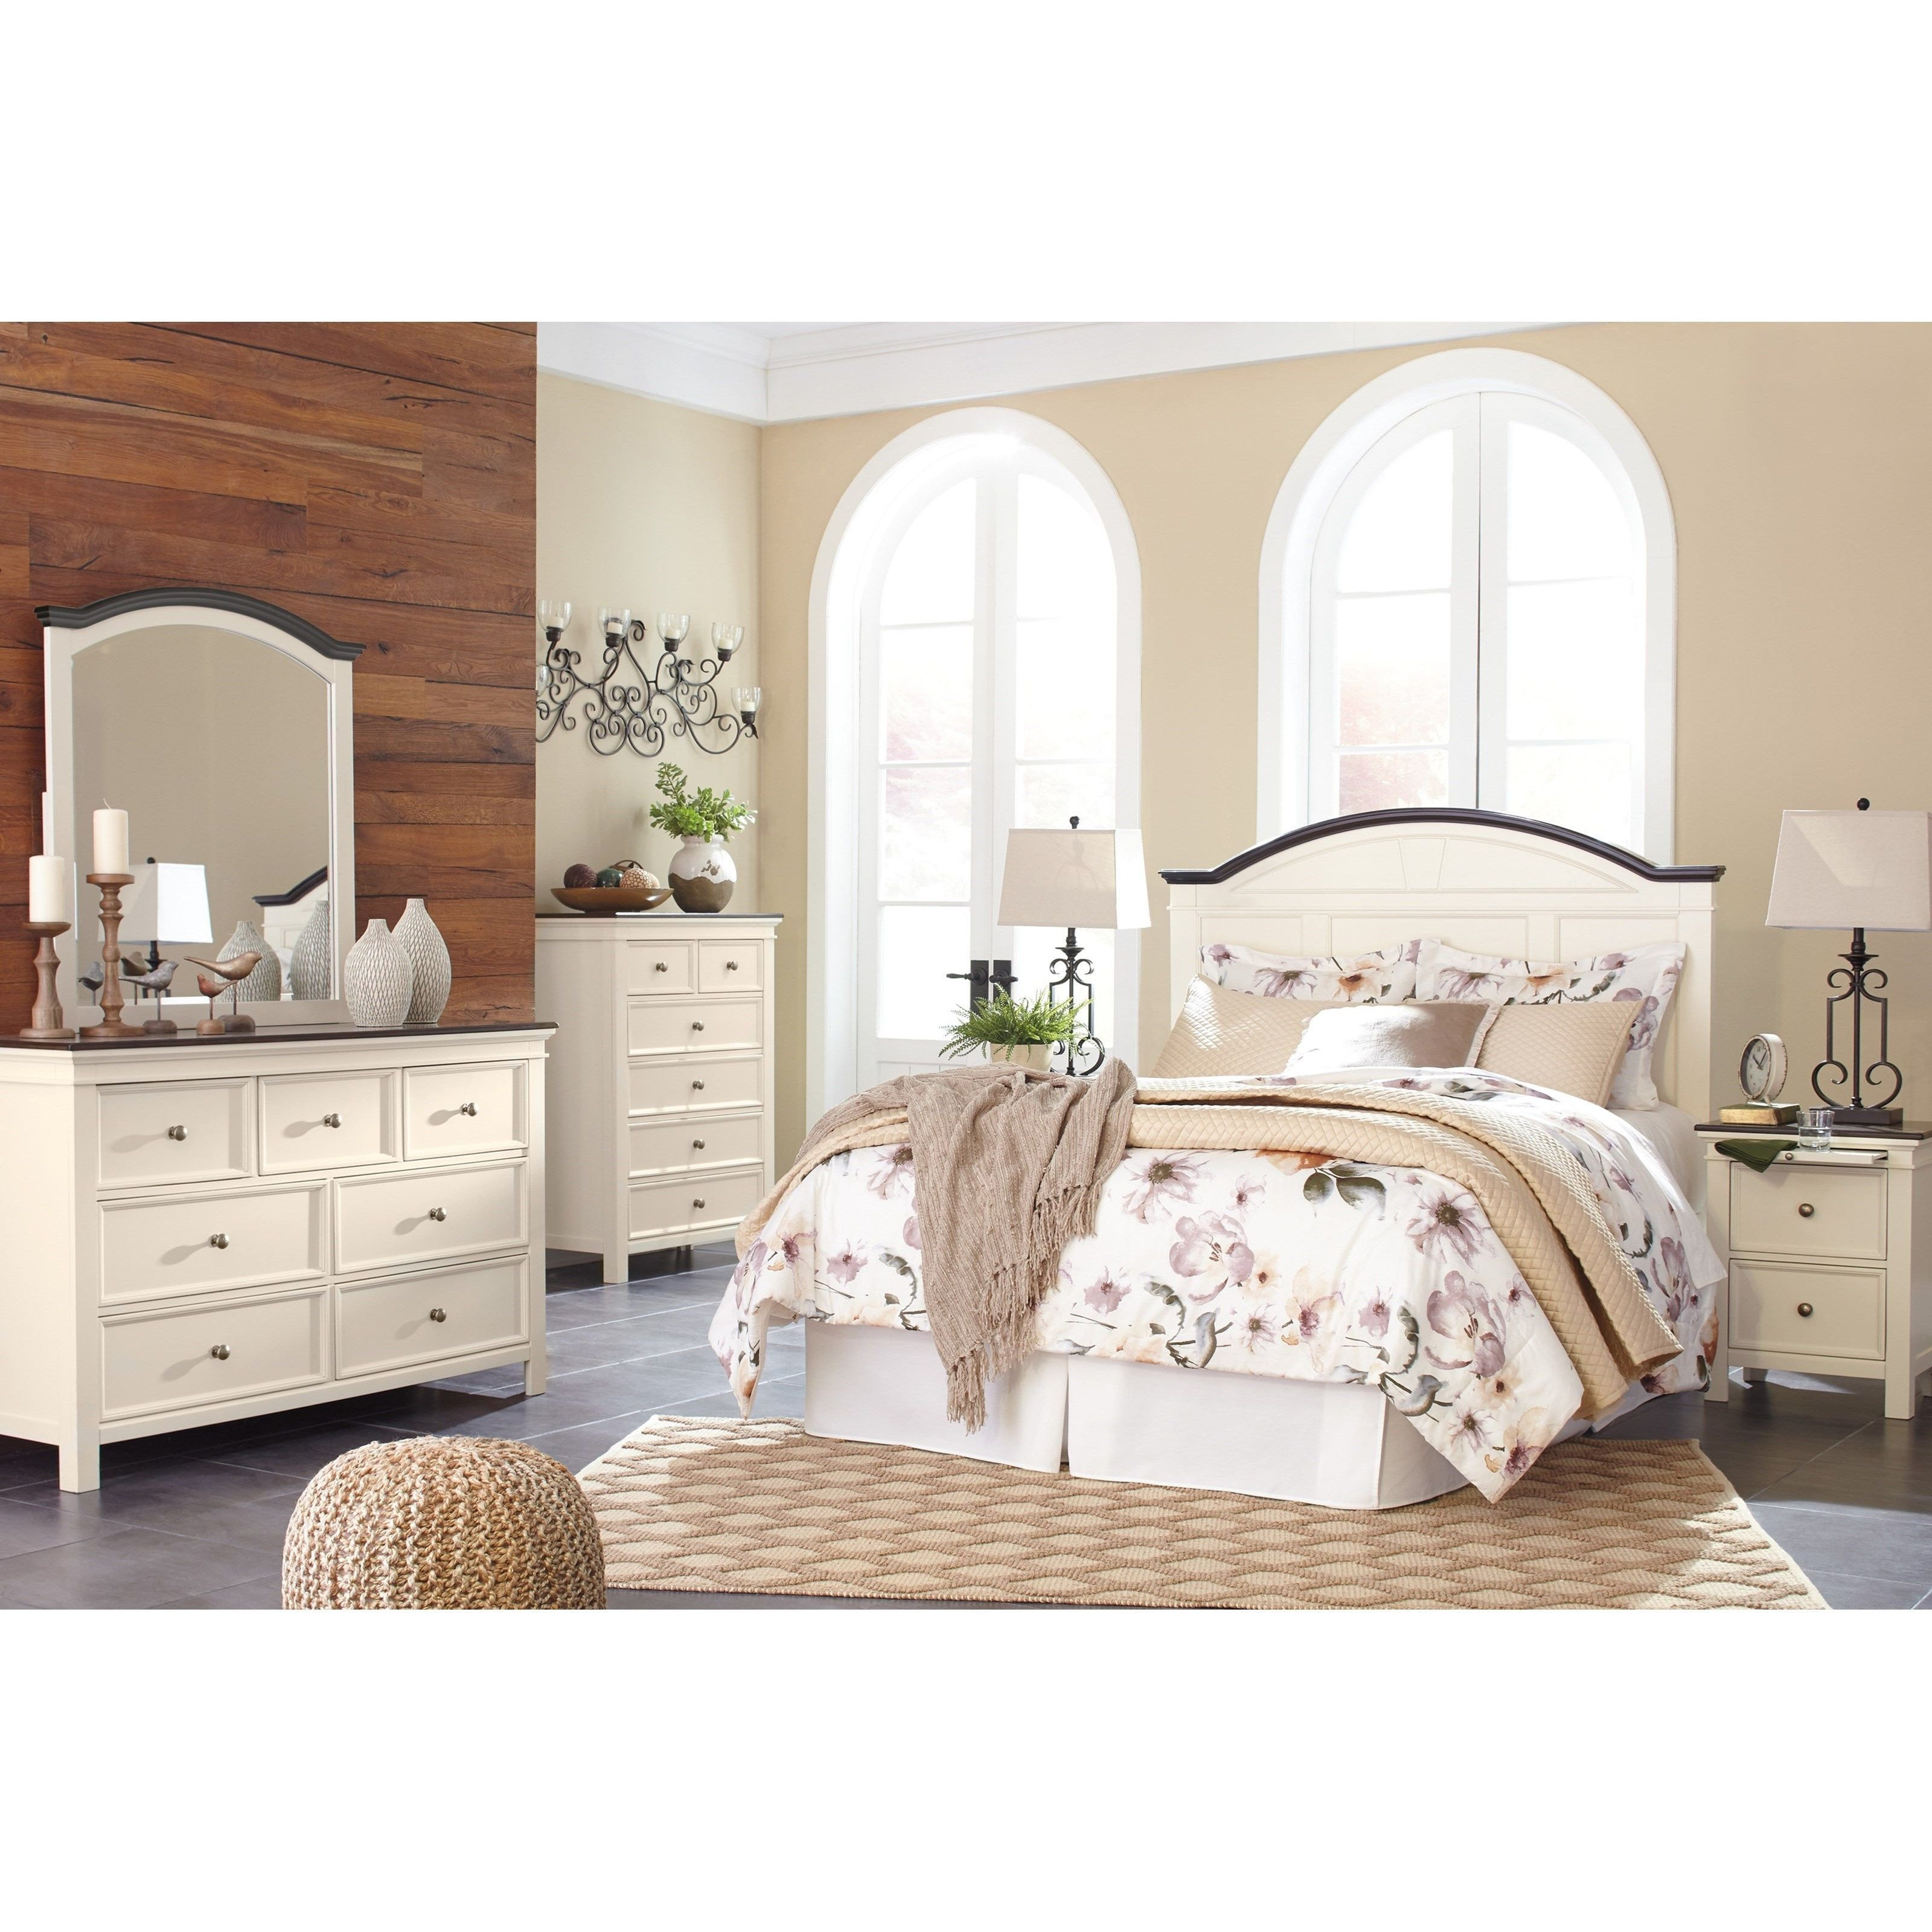 Value City Bedroom Set Inspirational Woodanville Queen Bedroom Group by Signature Design by